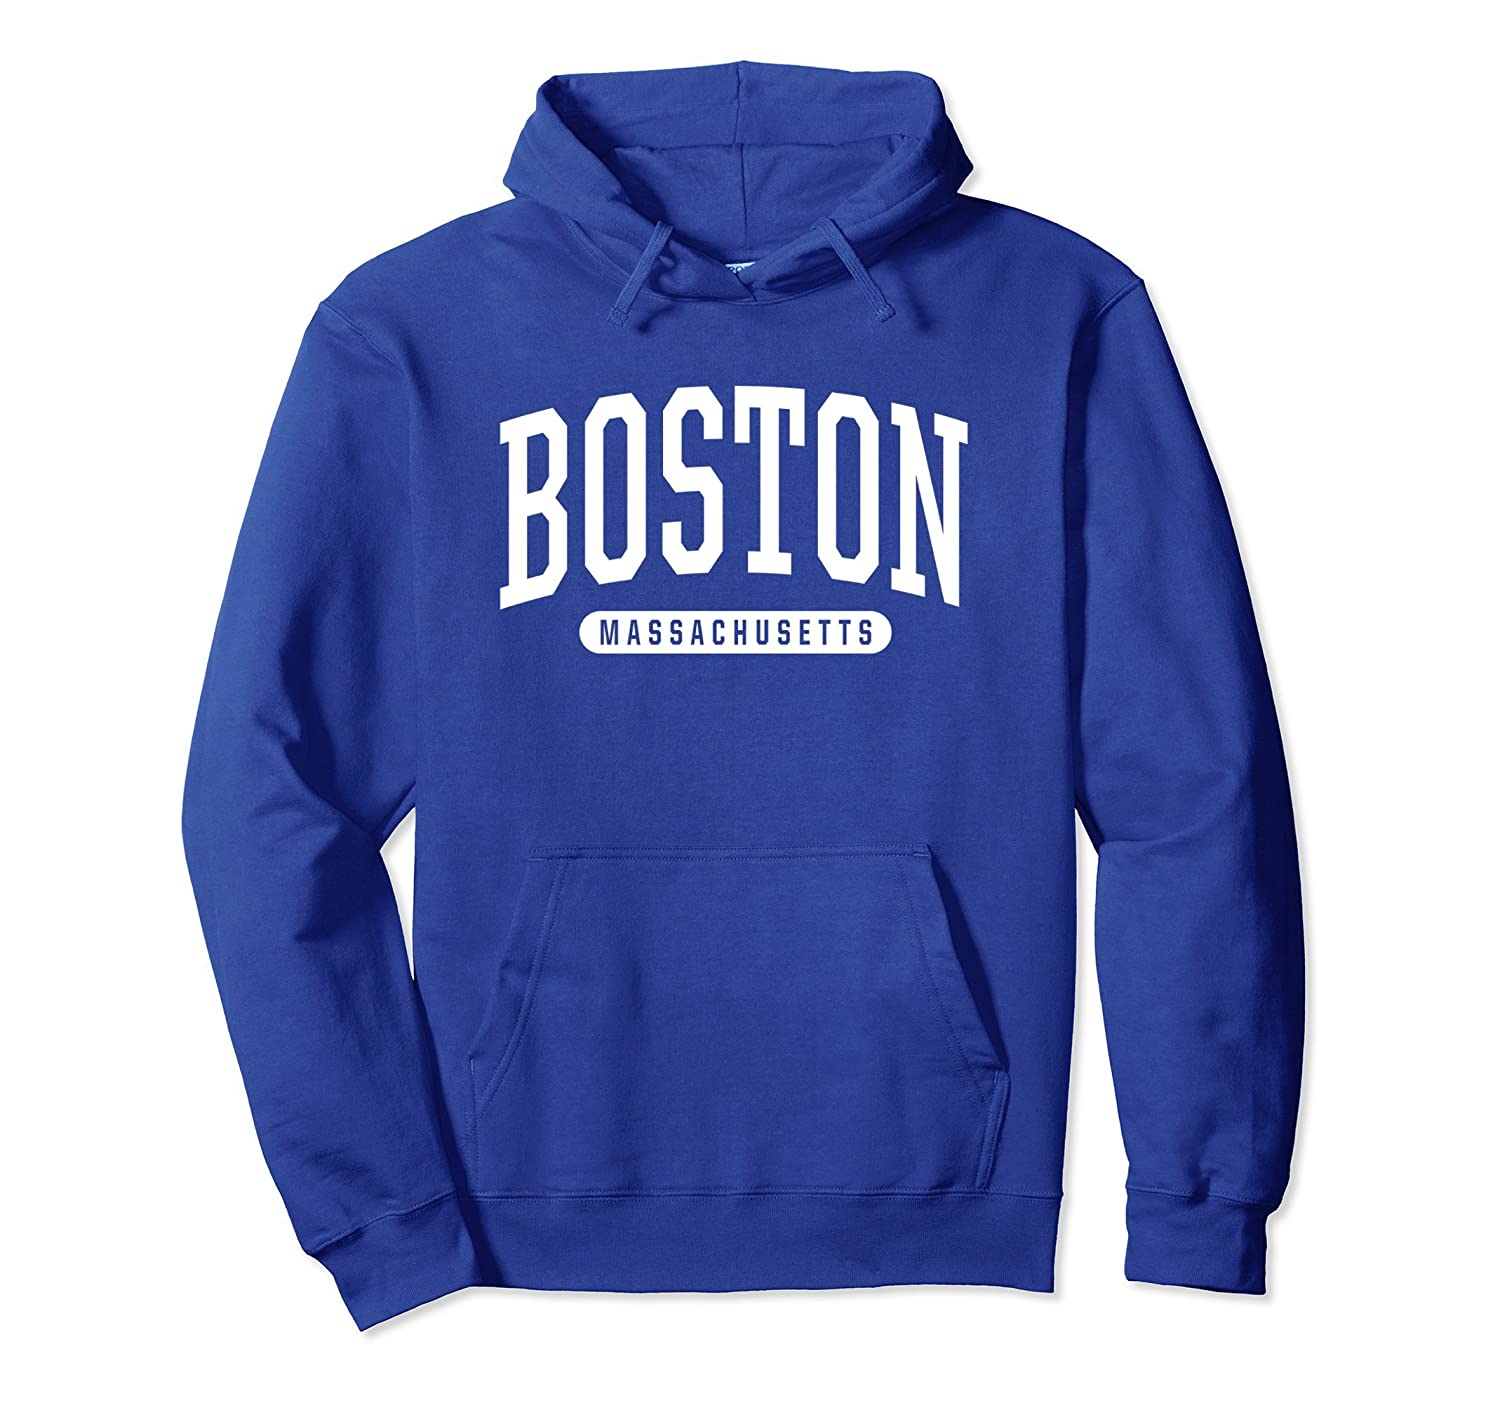 Boston Hoodie Sweatshirt College University Style Mass USA-TH